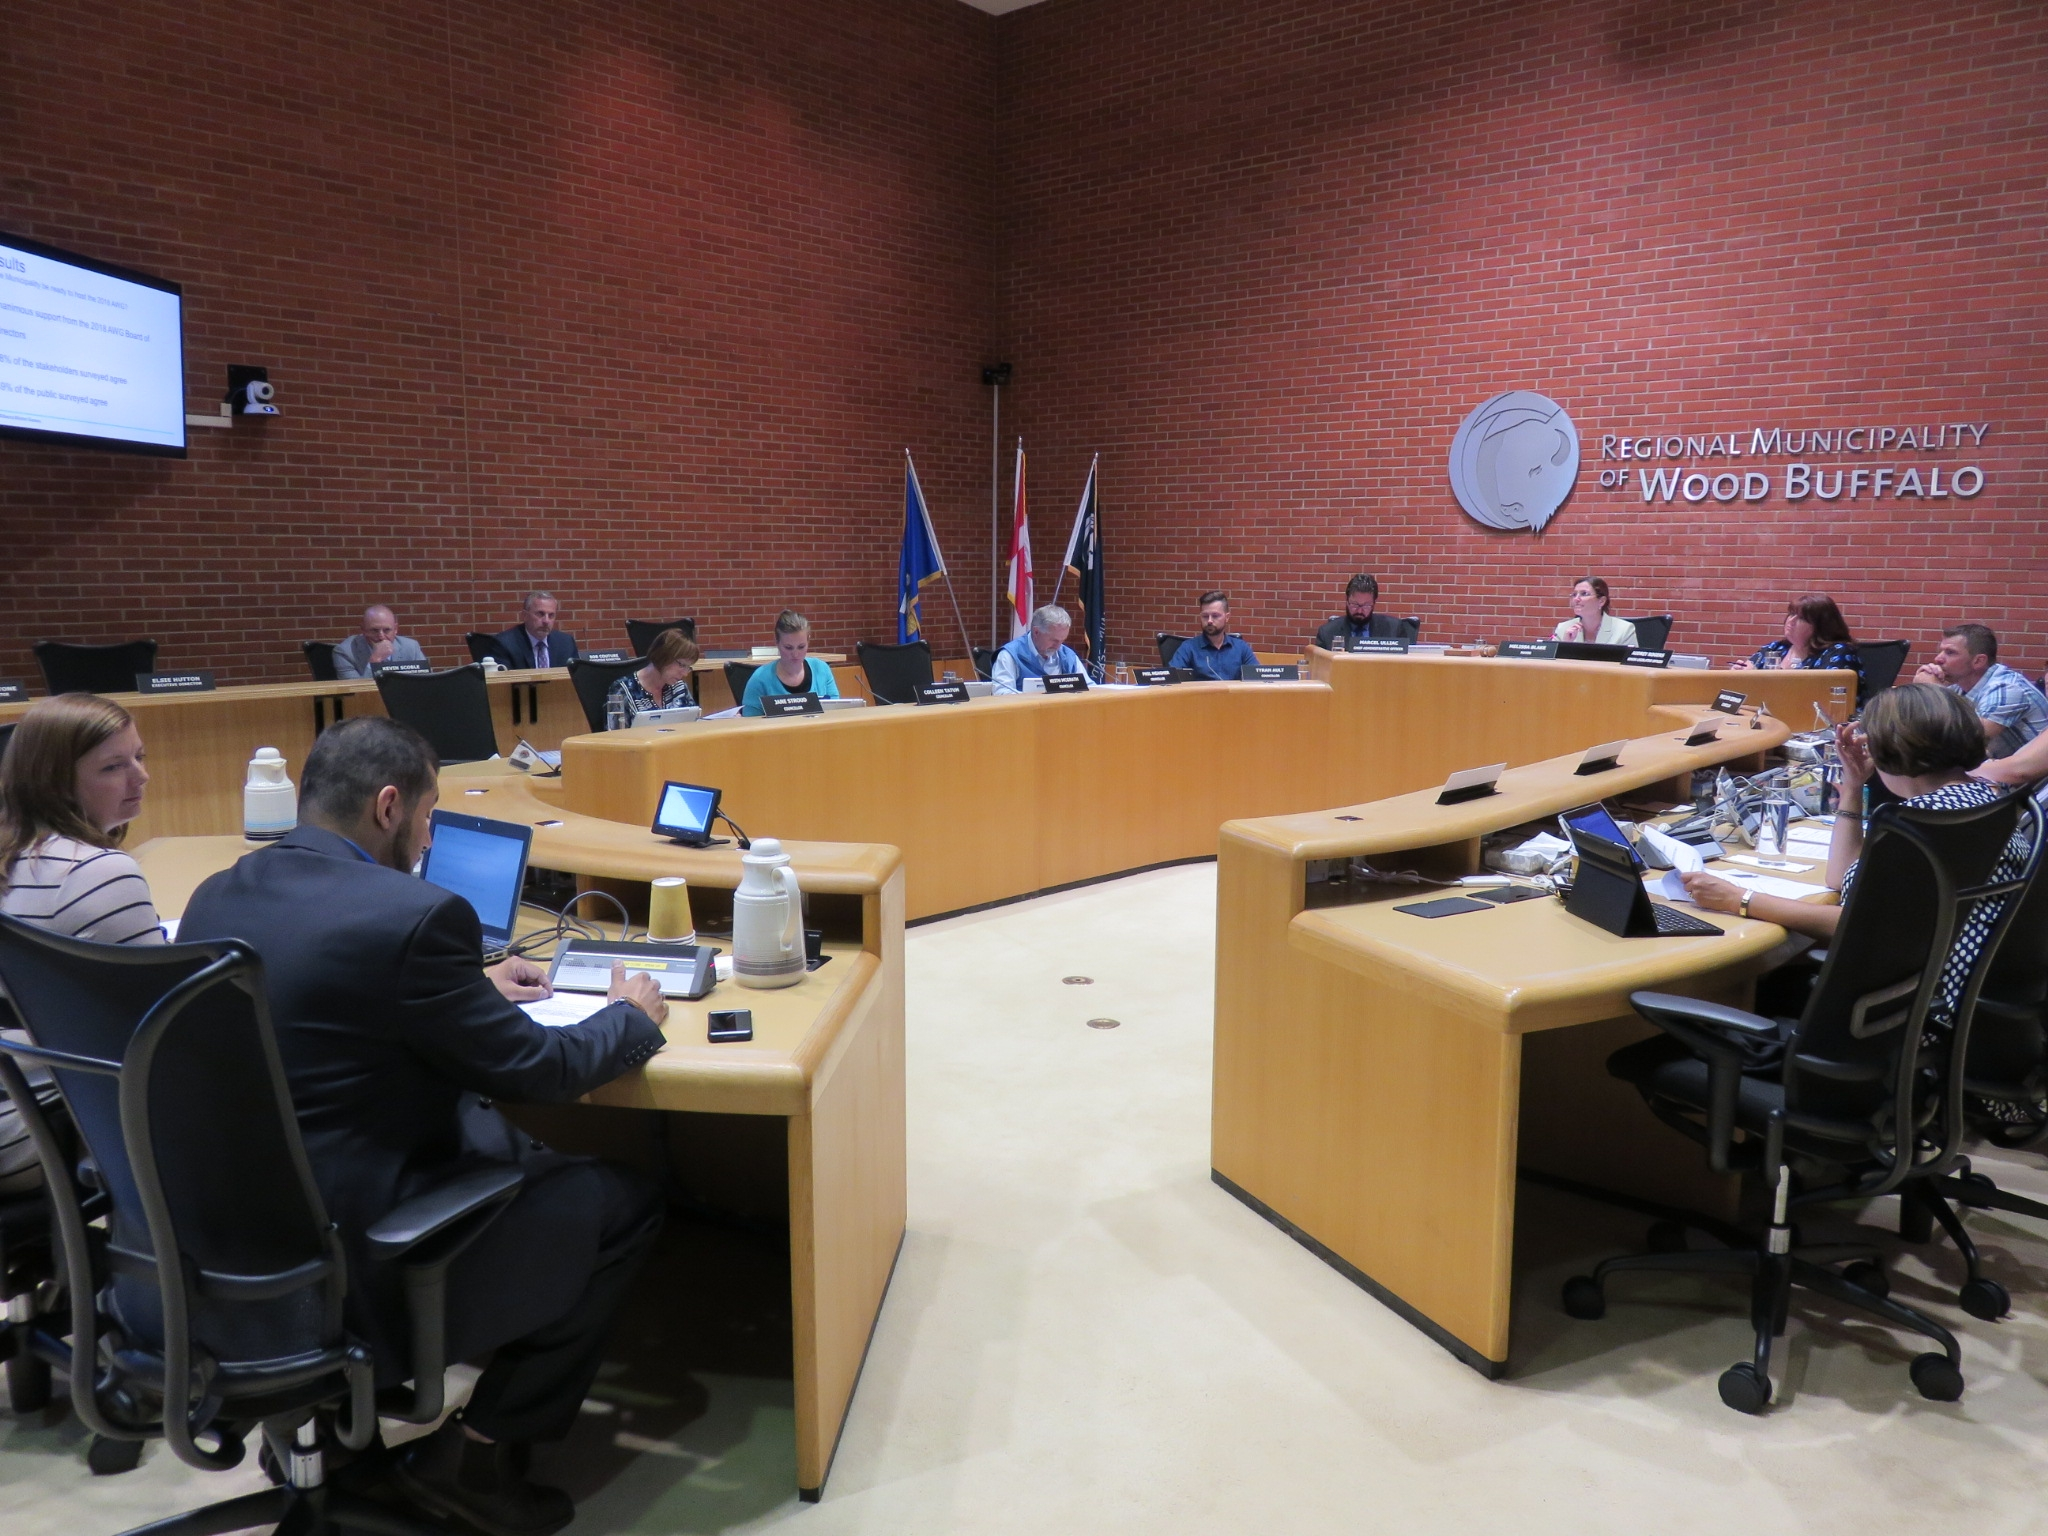 Last day of budget presentations will discuss capital projects